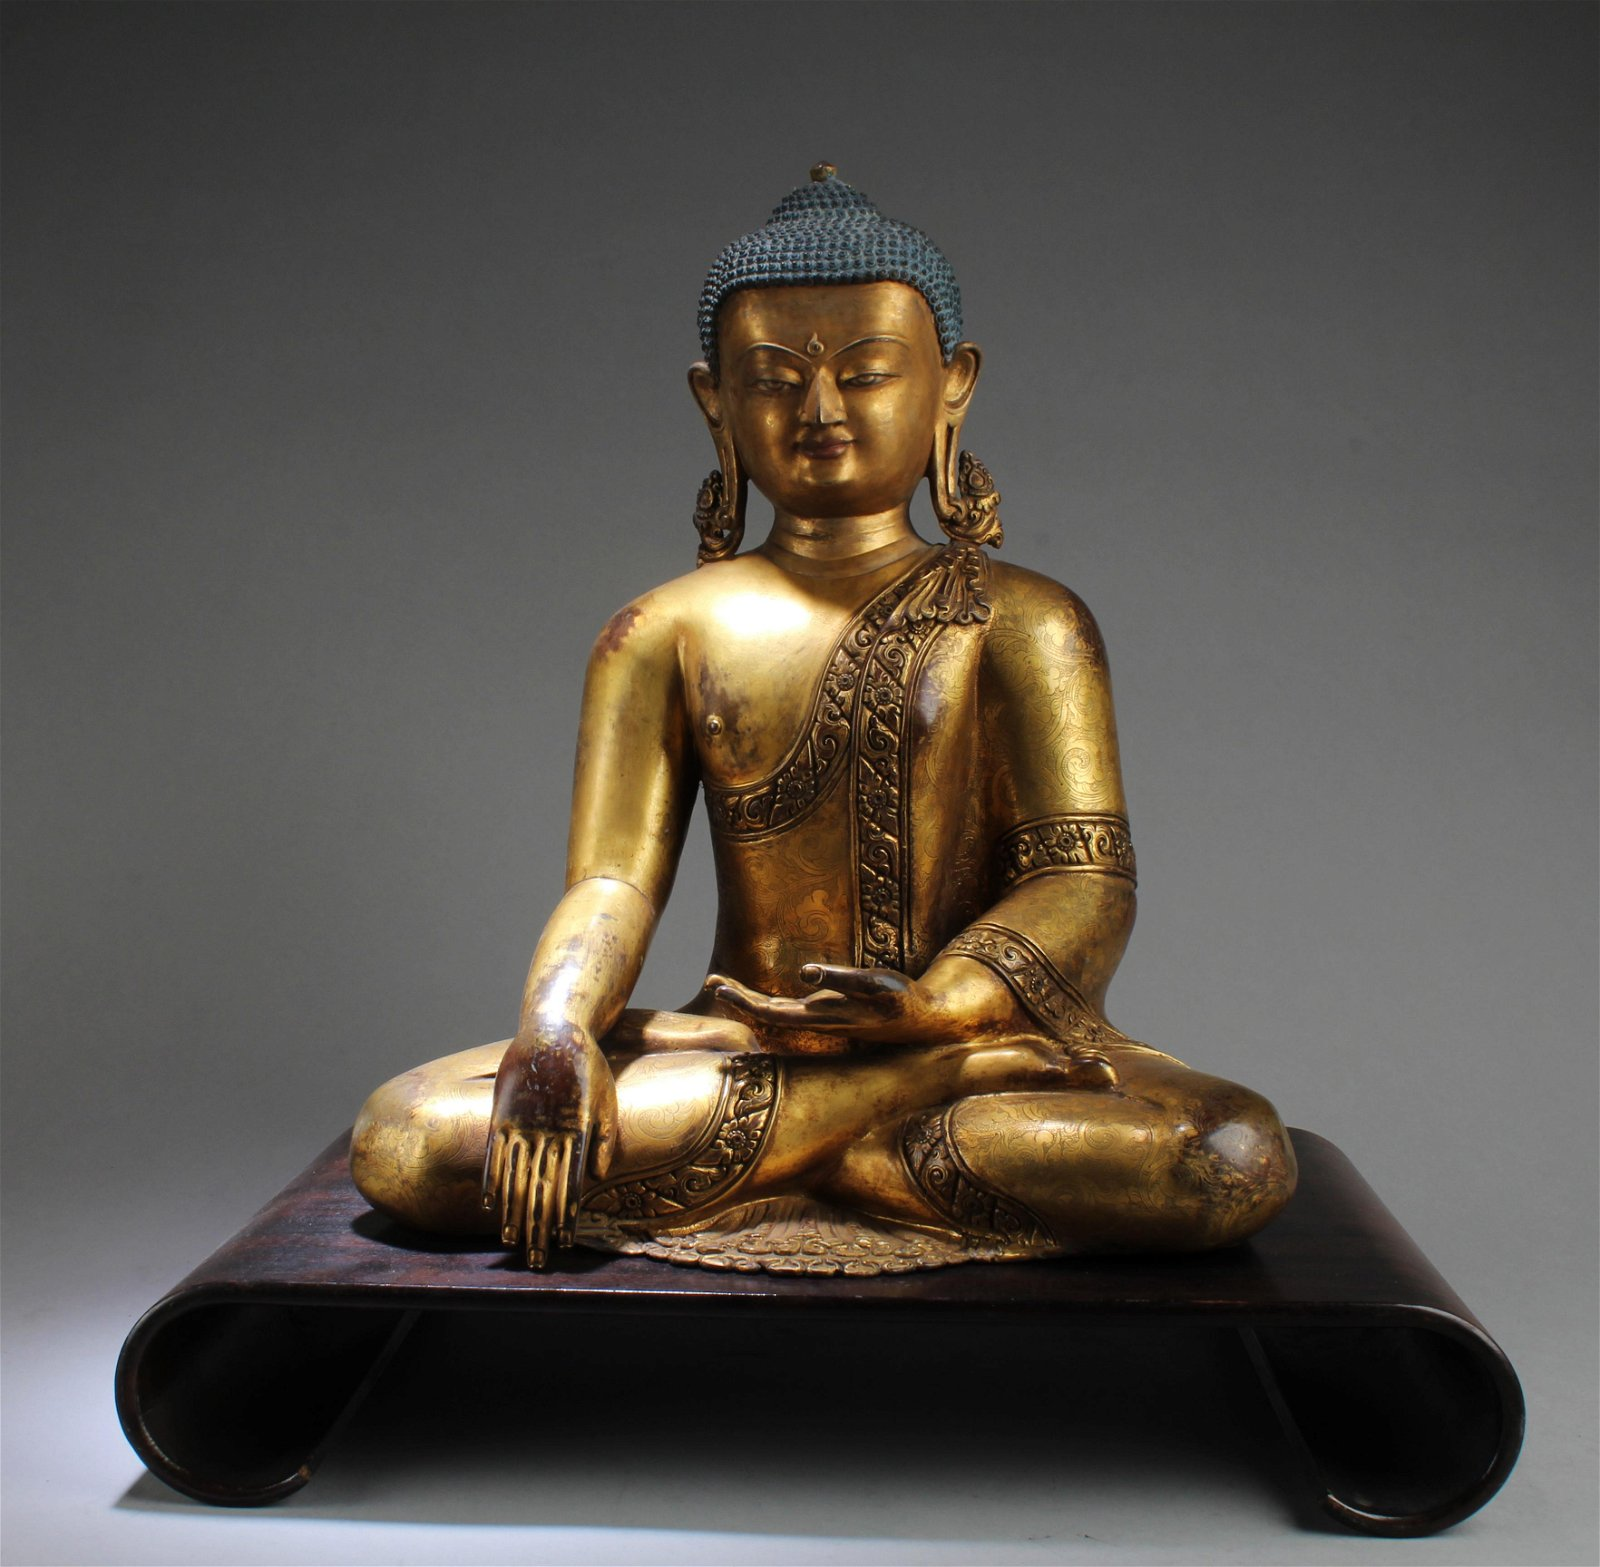 Antique Chinese Gilt Bronze Buddha Statue with Wood